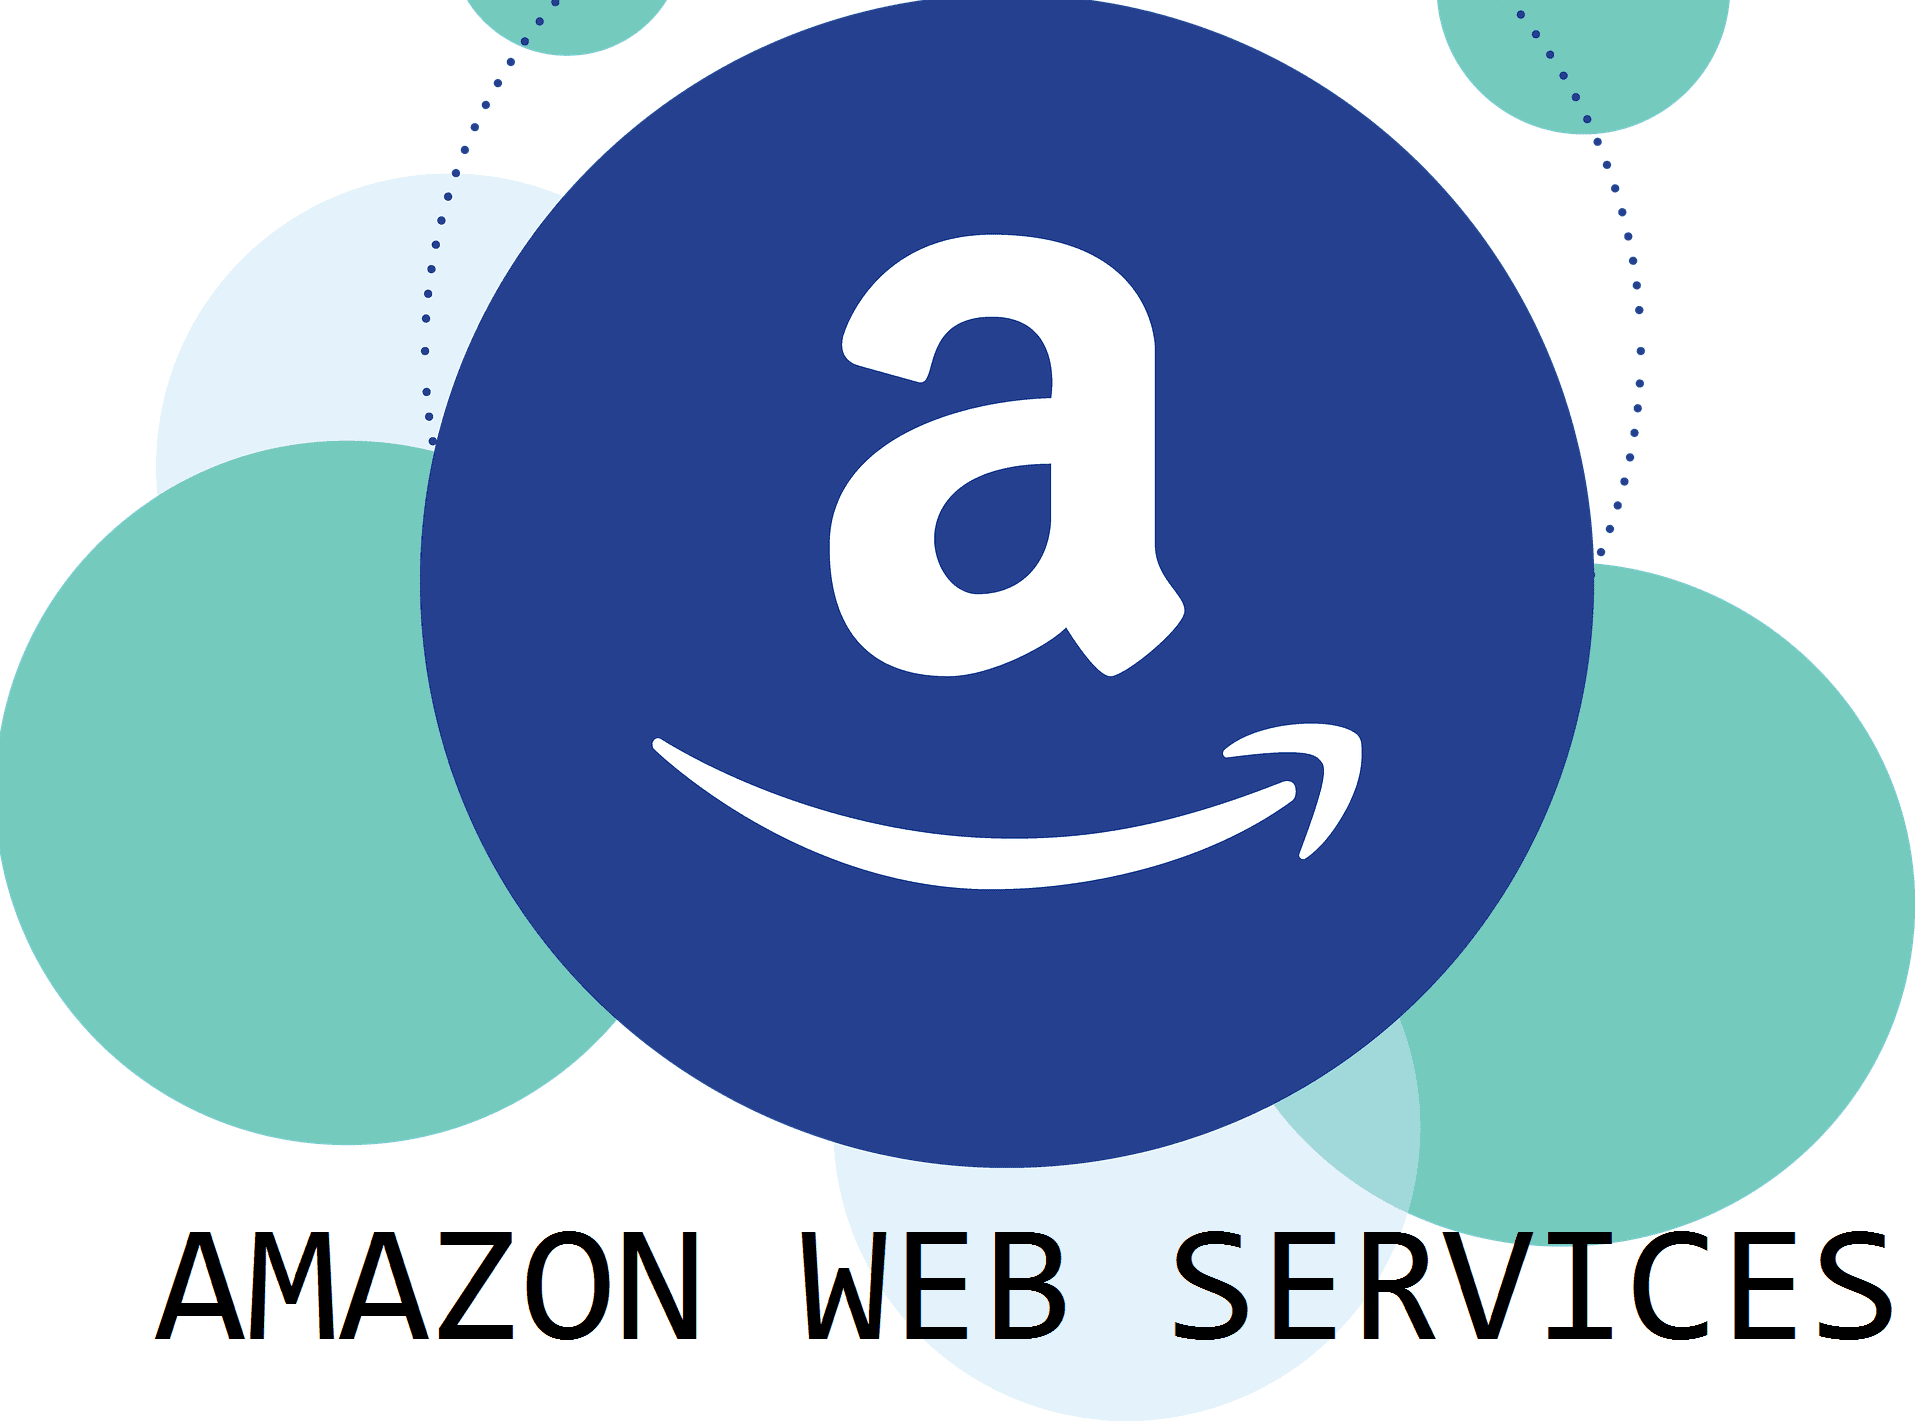 AWS Certified Solutions Architect - Associate - 2018 | CertHub